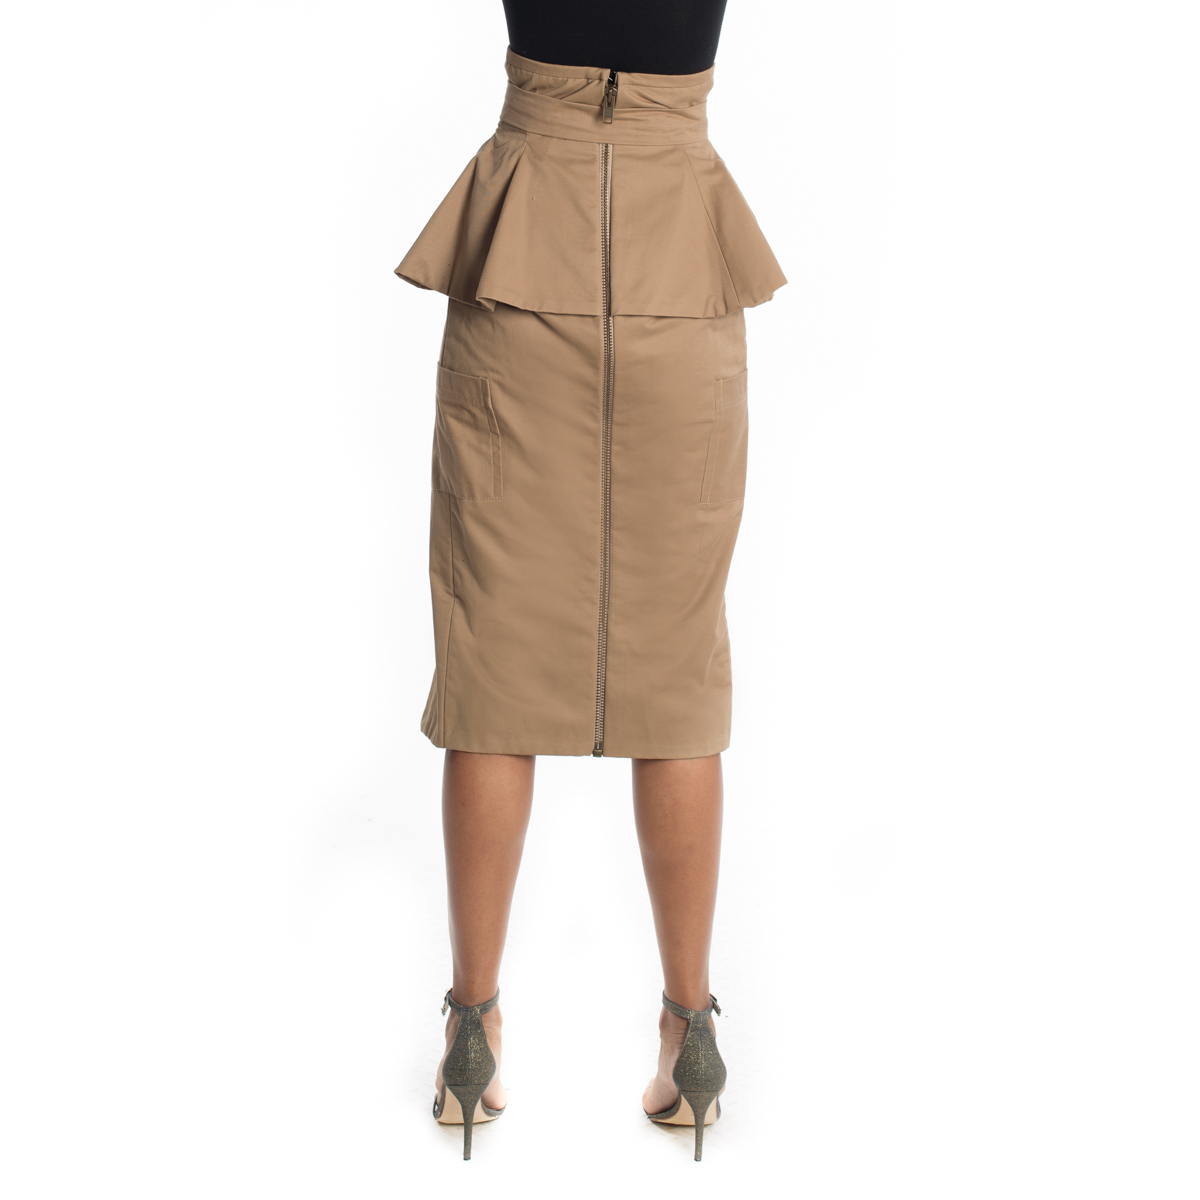 Khaki Belted High Slit Skirt